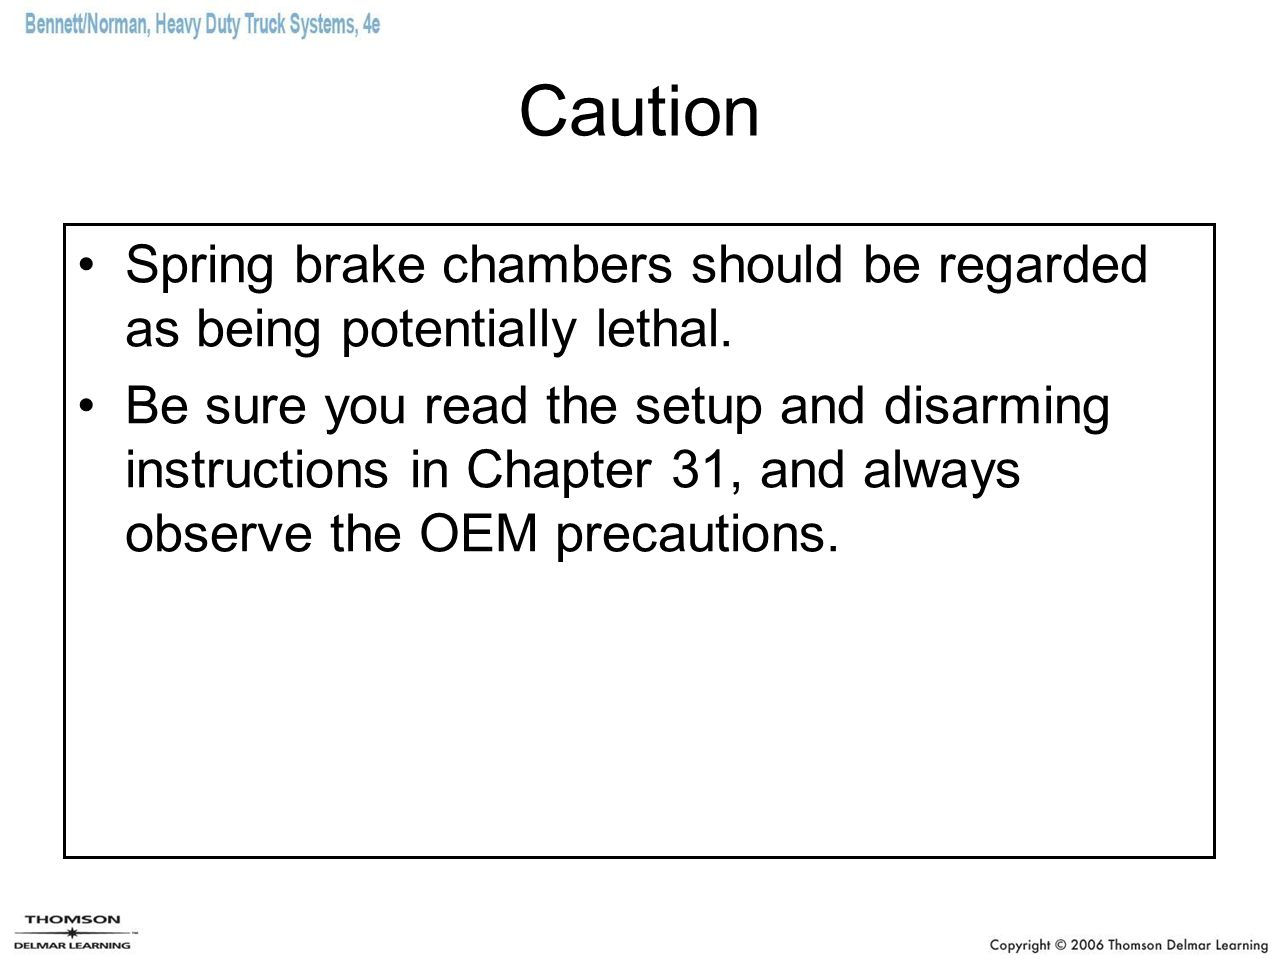 Caution Spring brake chambers should be regarded as being potentially lethal.